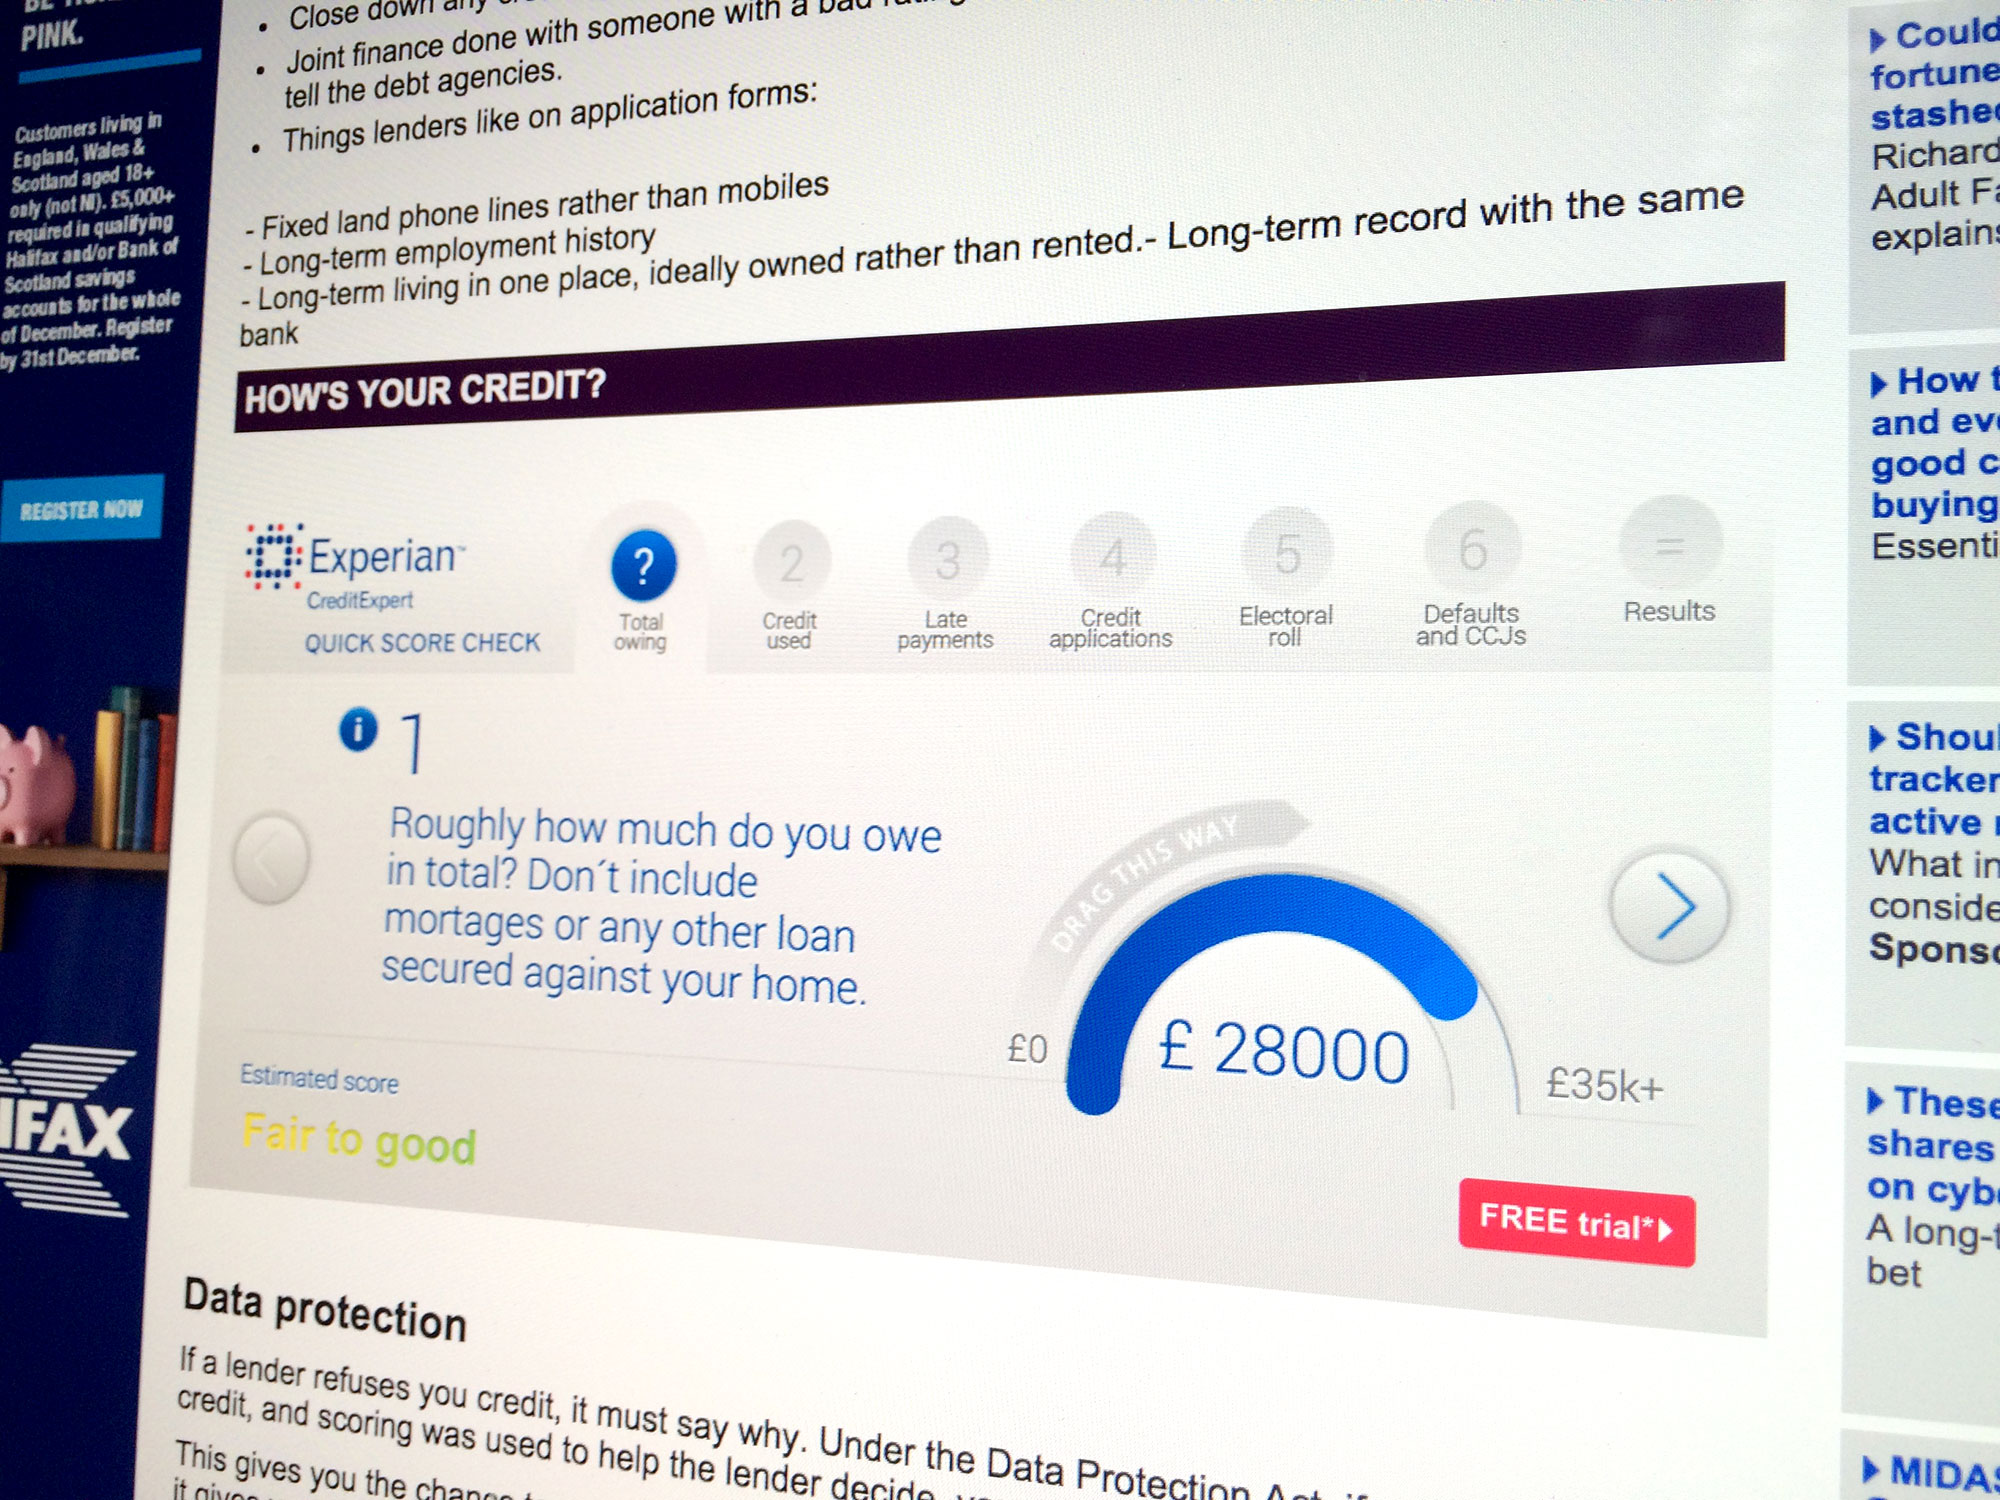 Experian-widget-screen-photo